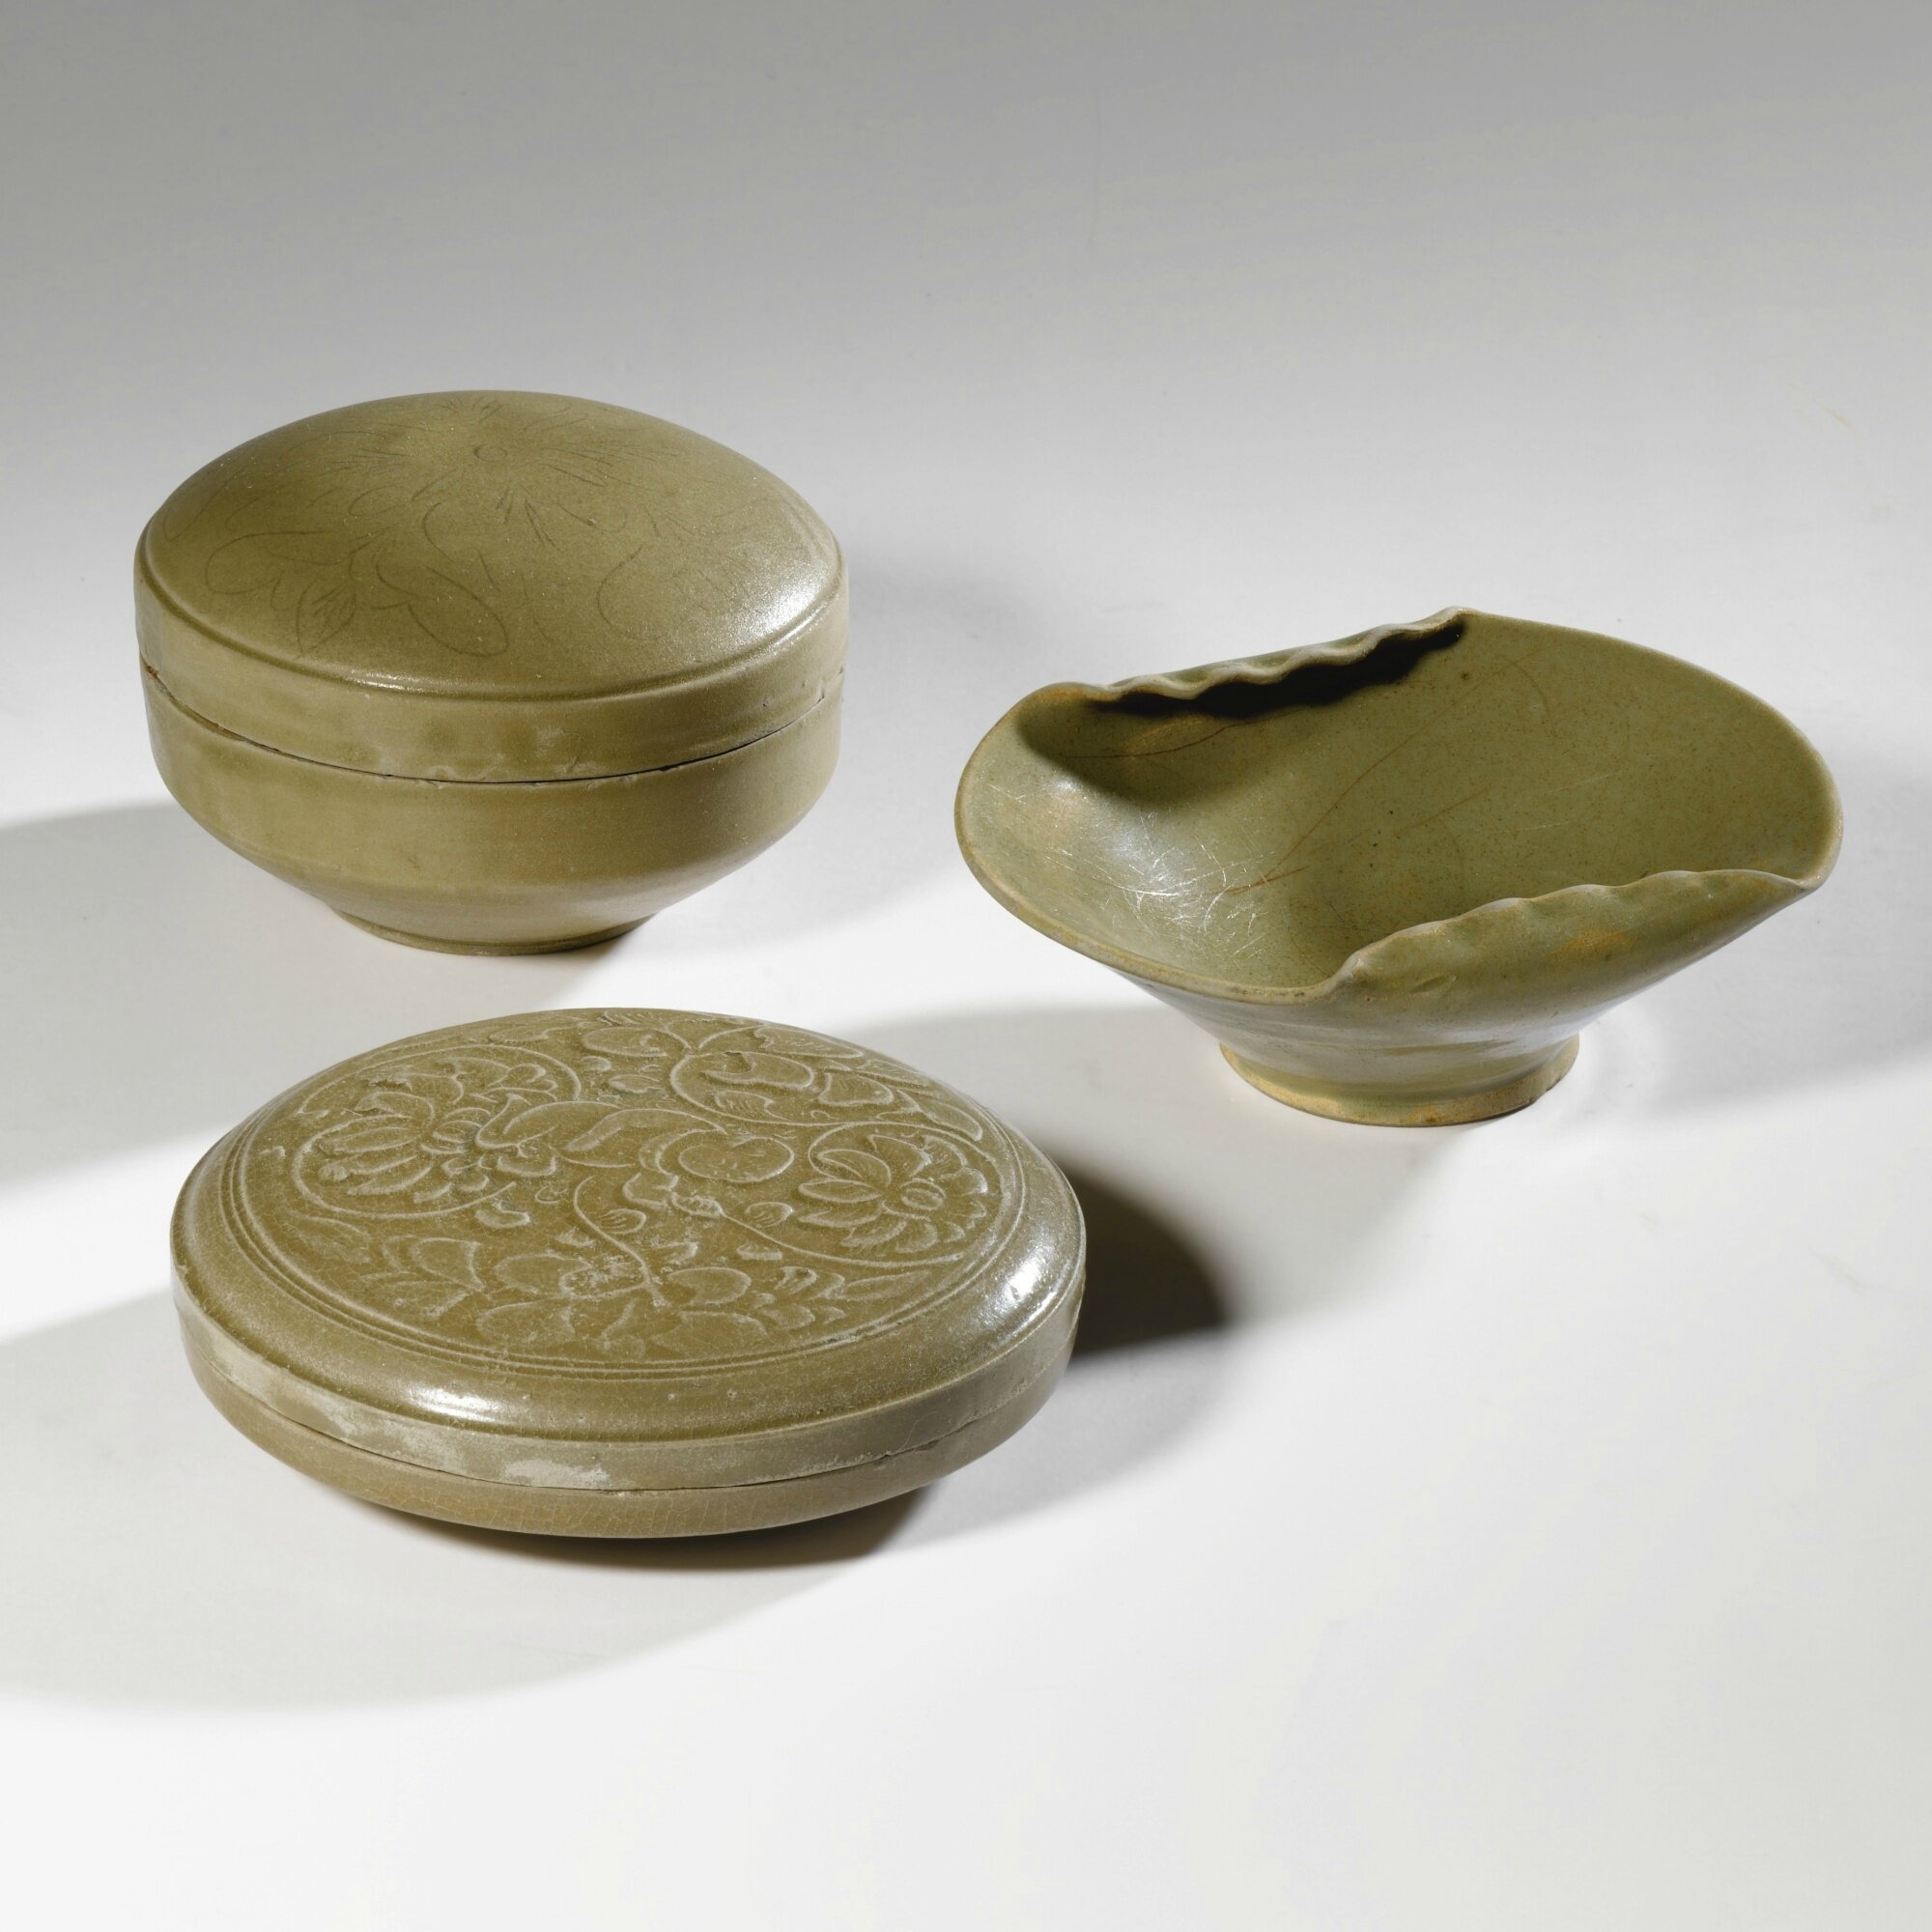 Two 'Yue' cosmetics boxes and covers, Five Dynasties-Northern Song dynasty (907-1127)